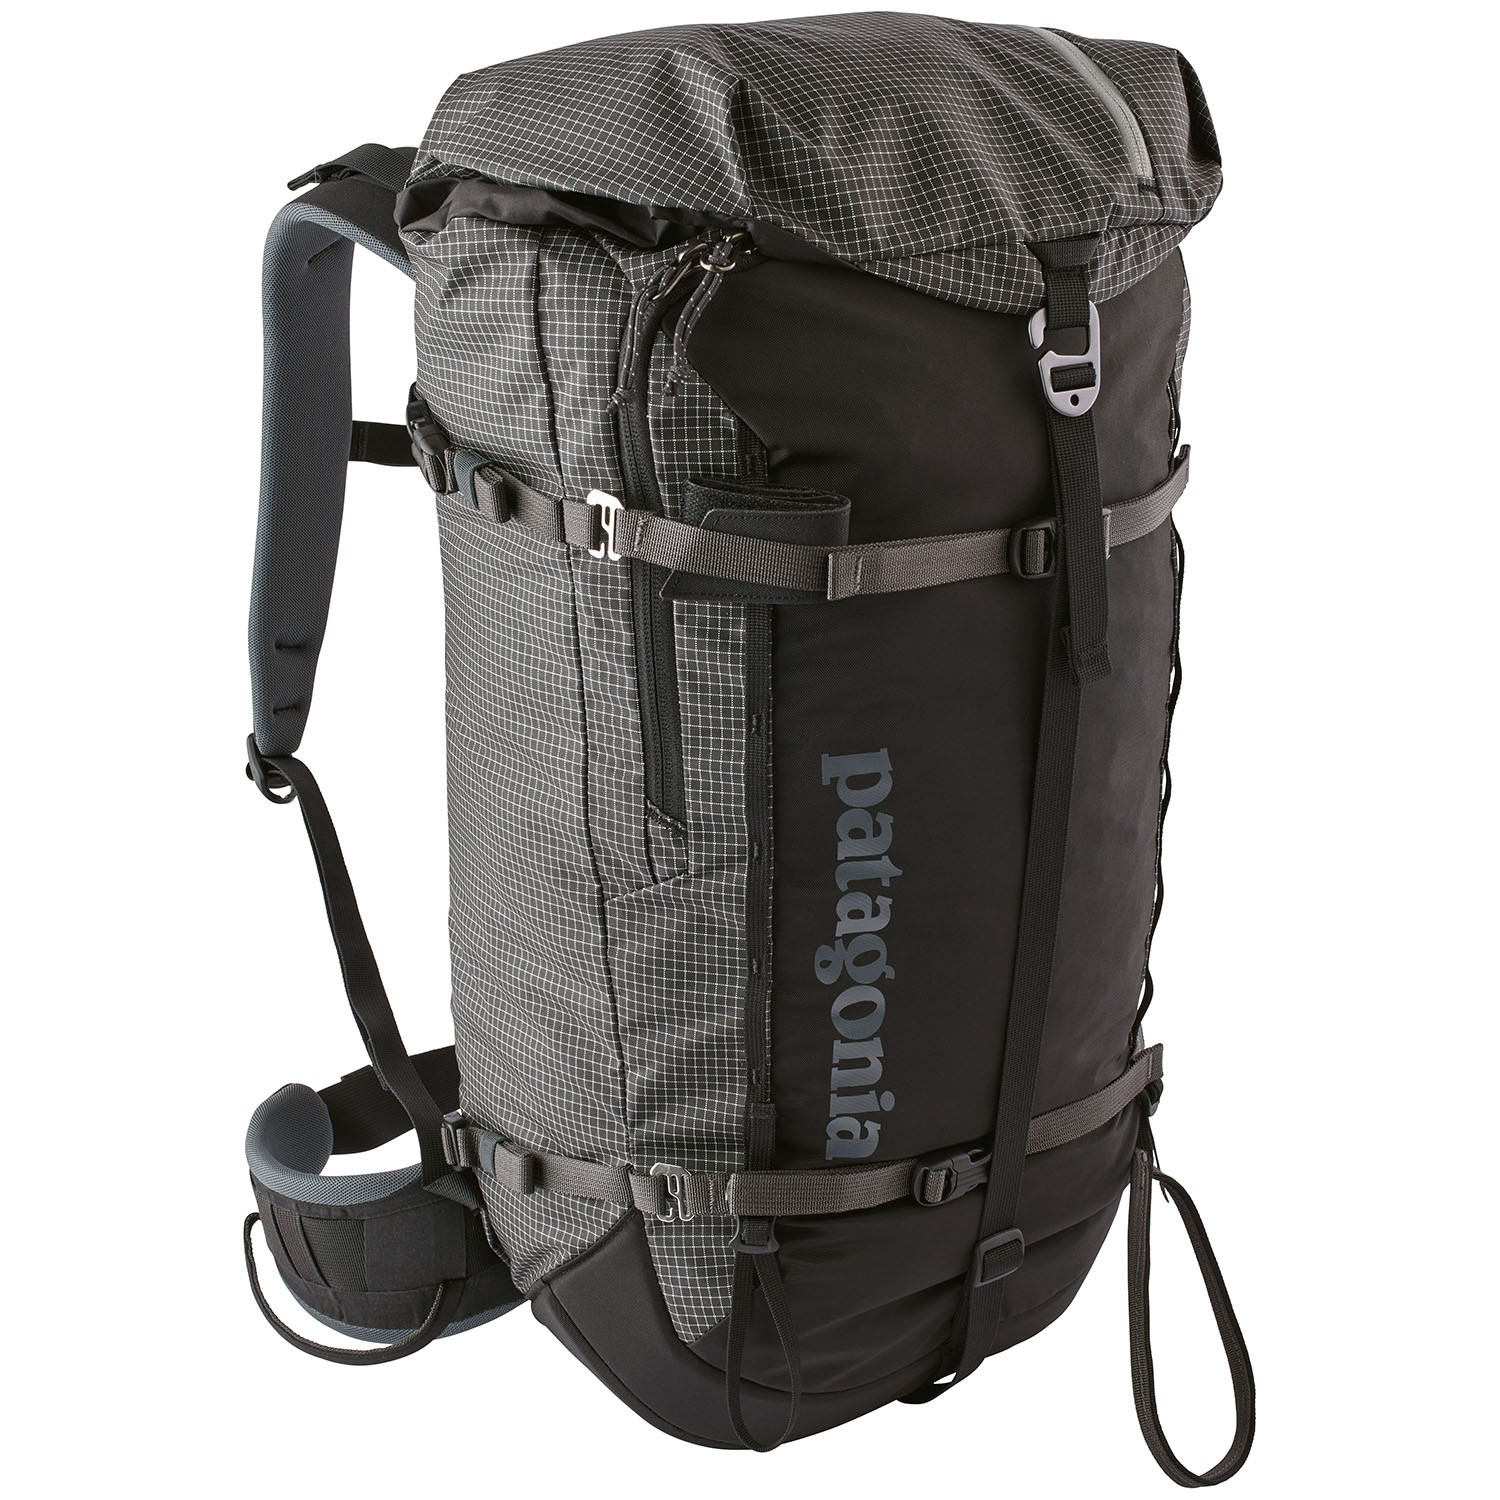 56fa5654f1b68 Patagonia Descensionist 32L Backpack